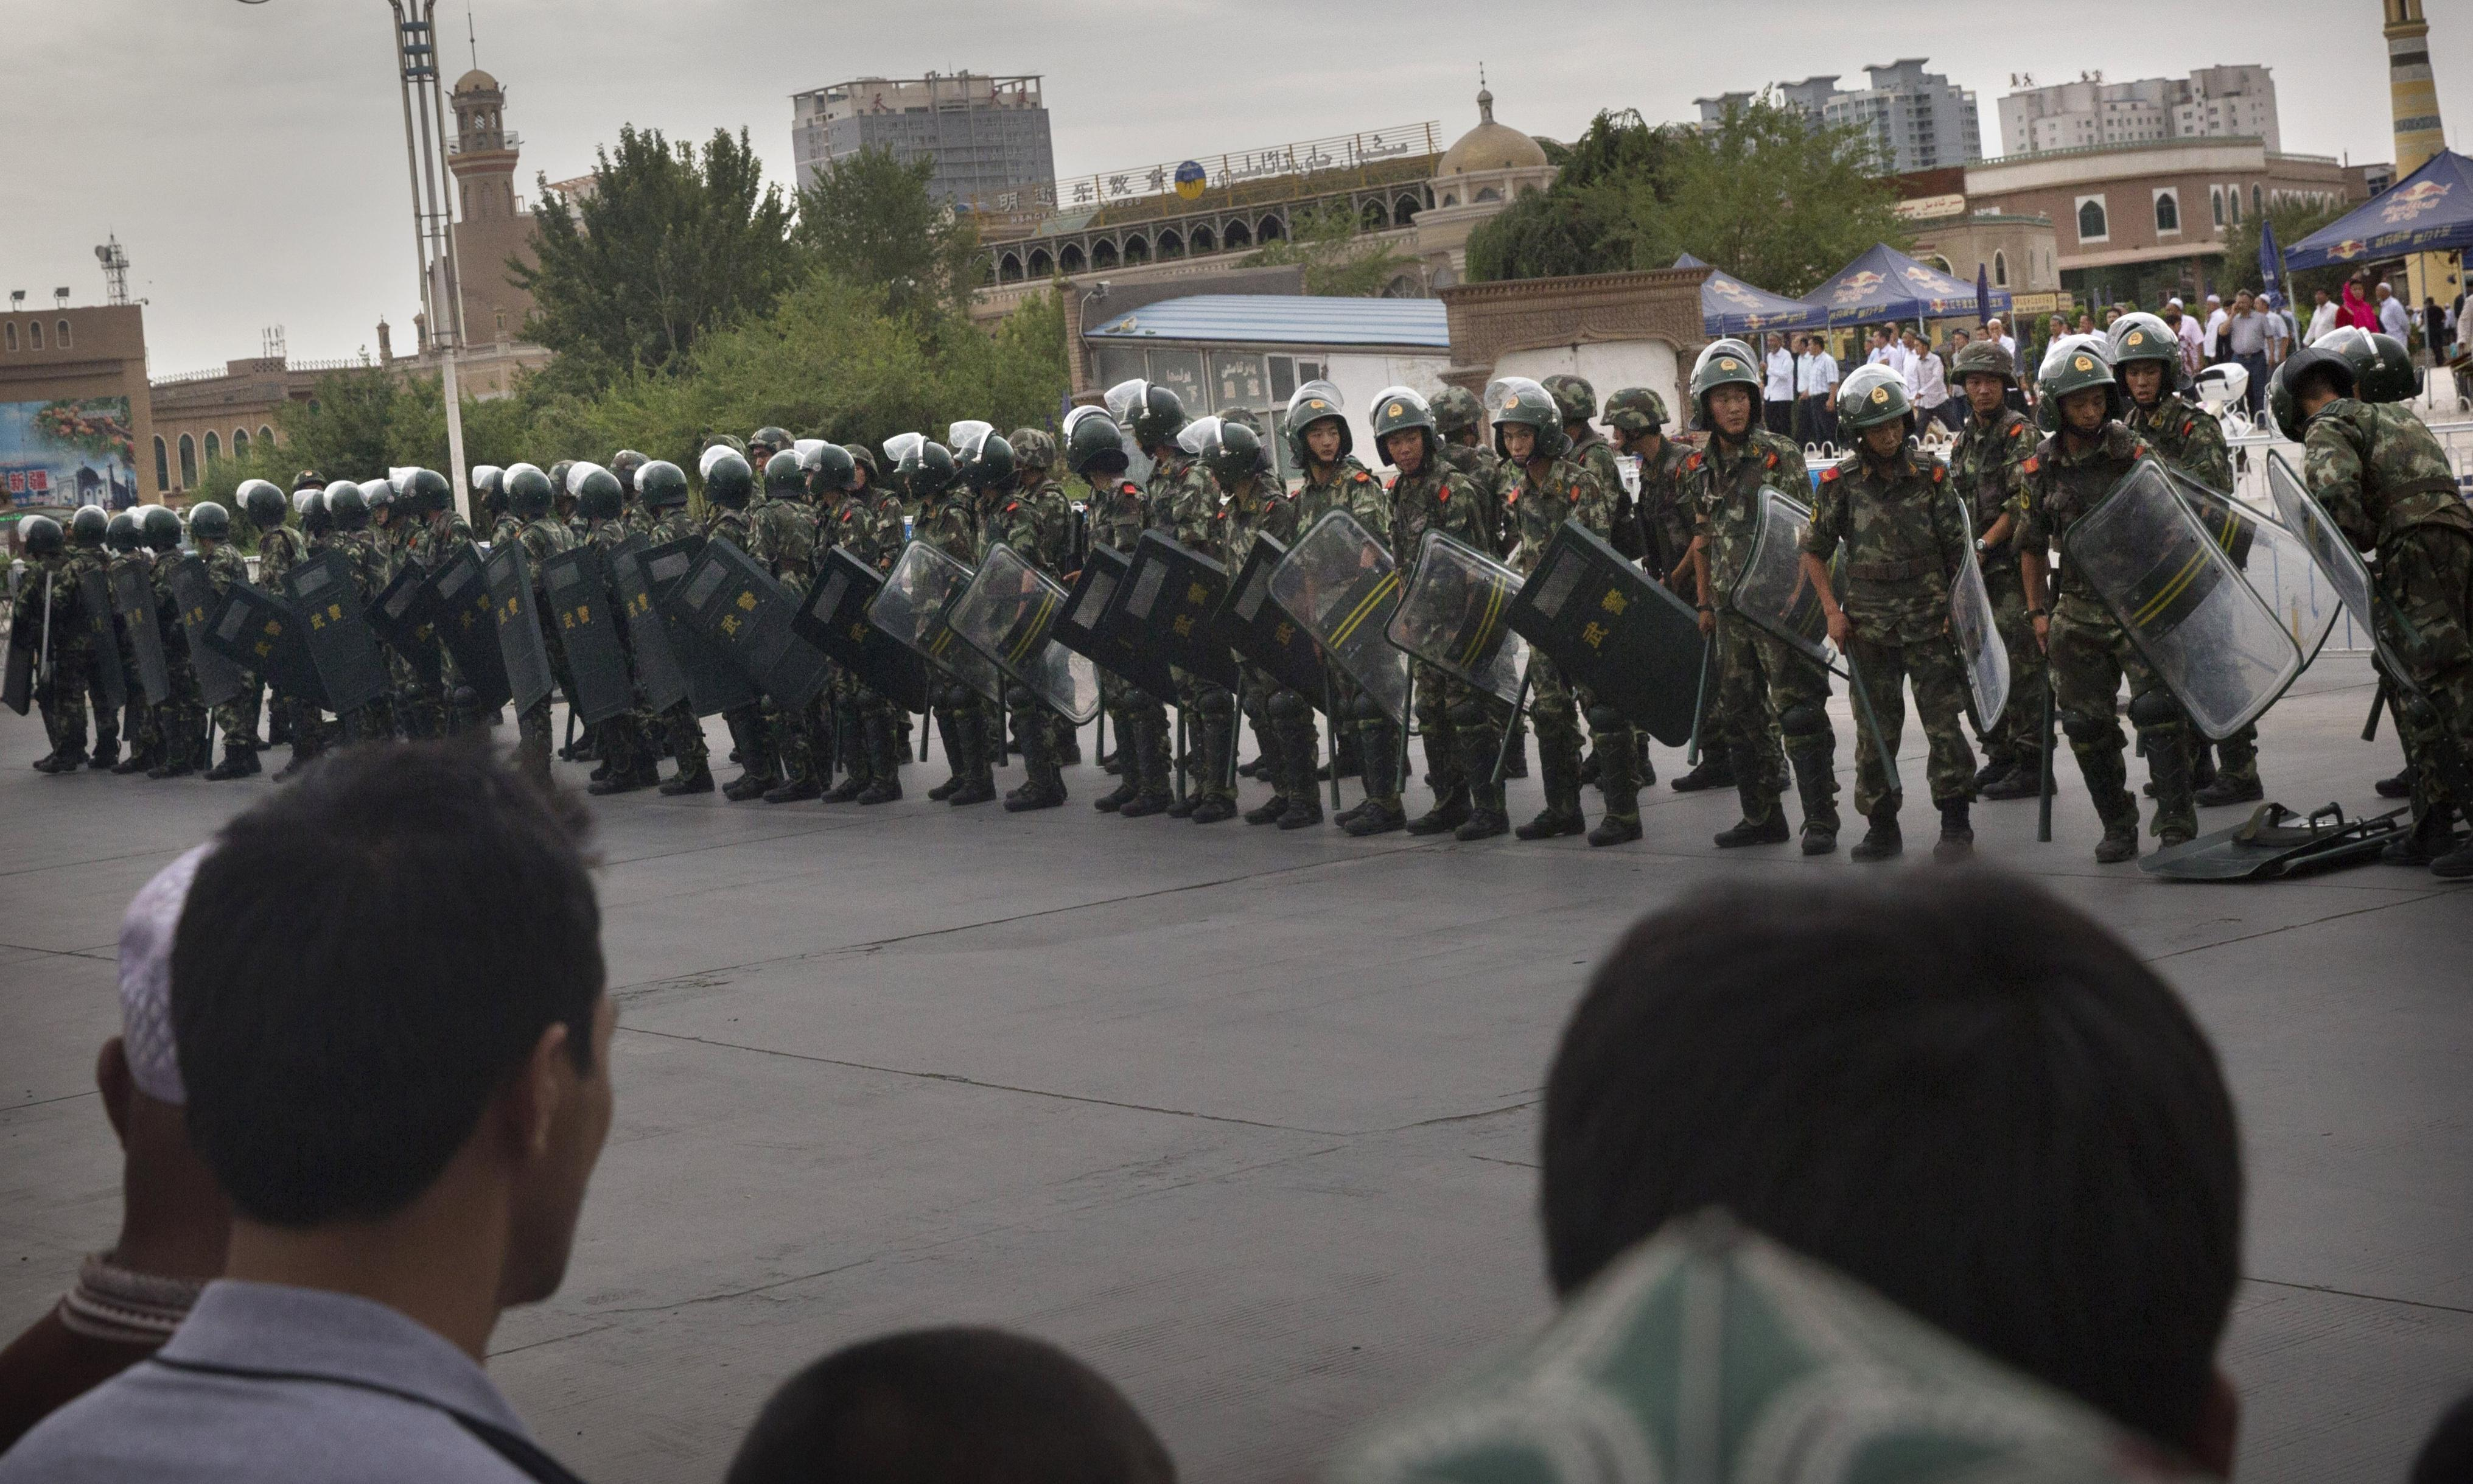 The Guardian view on Xinjiang, China: forced labour and fashion shows